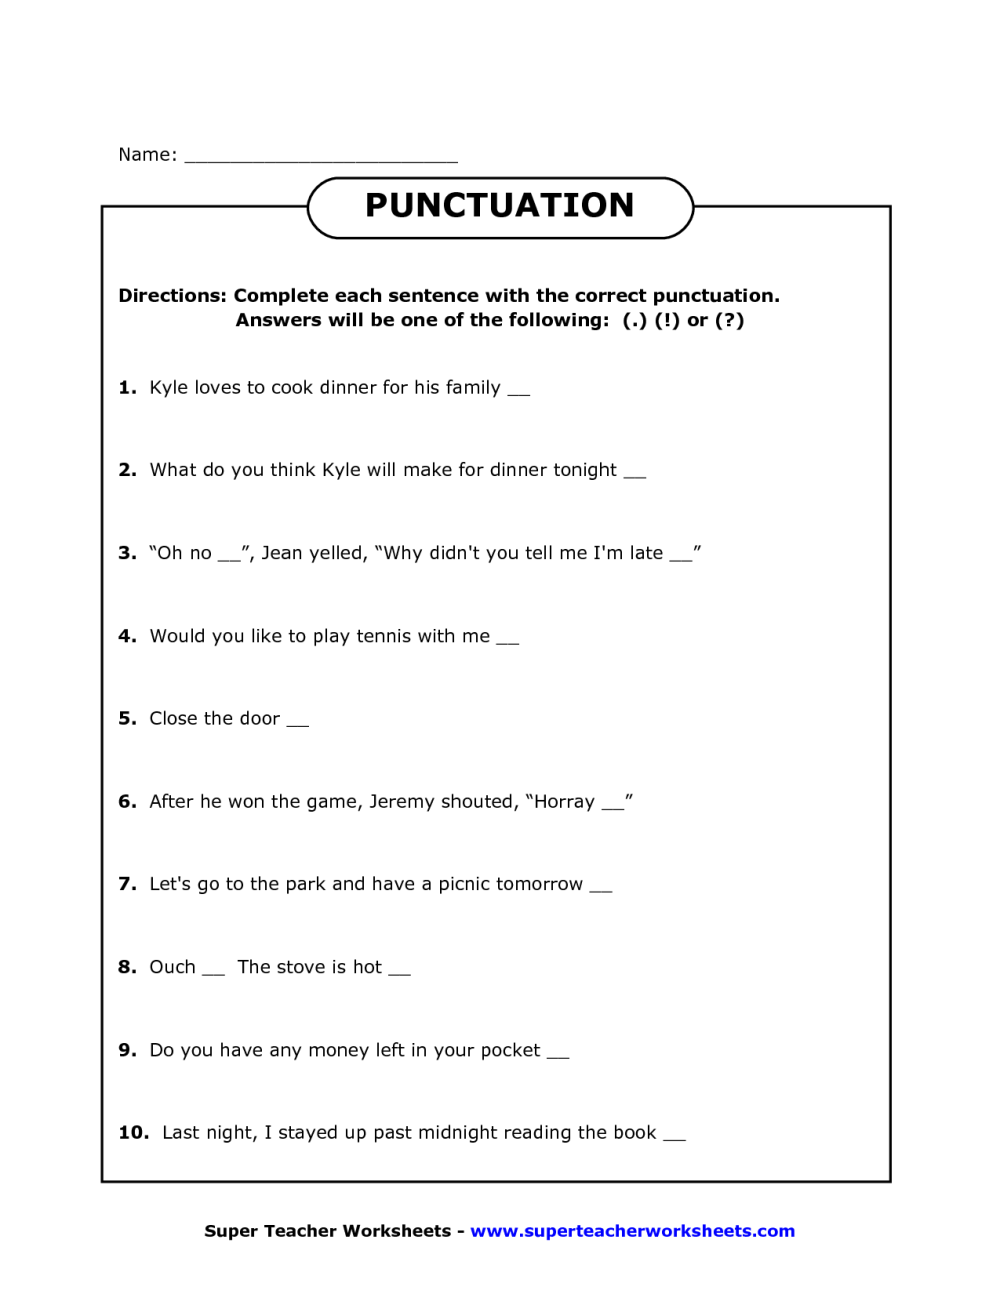 medium resolution of Punctuation Worksheets 8th Grade   Printable Worksheets and Activities for  Teachers